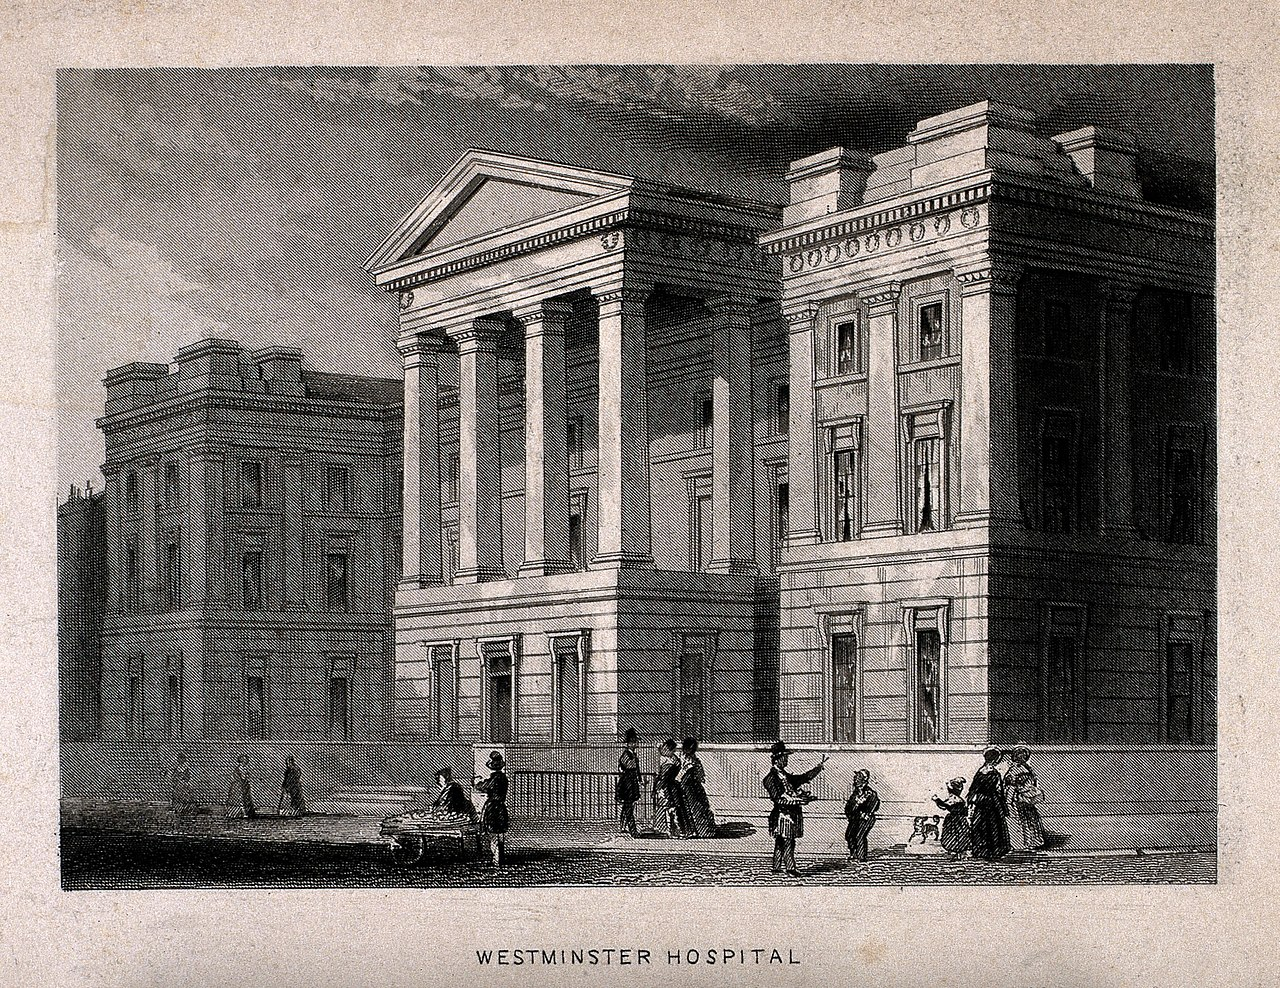 An engraving of the old St George's Hospital in London